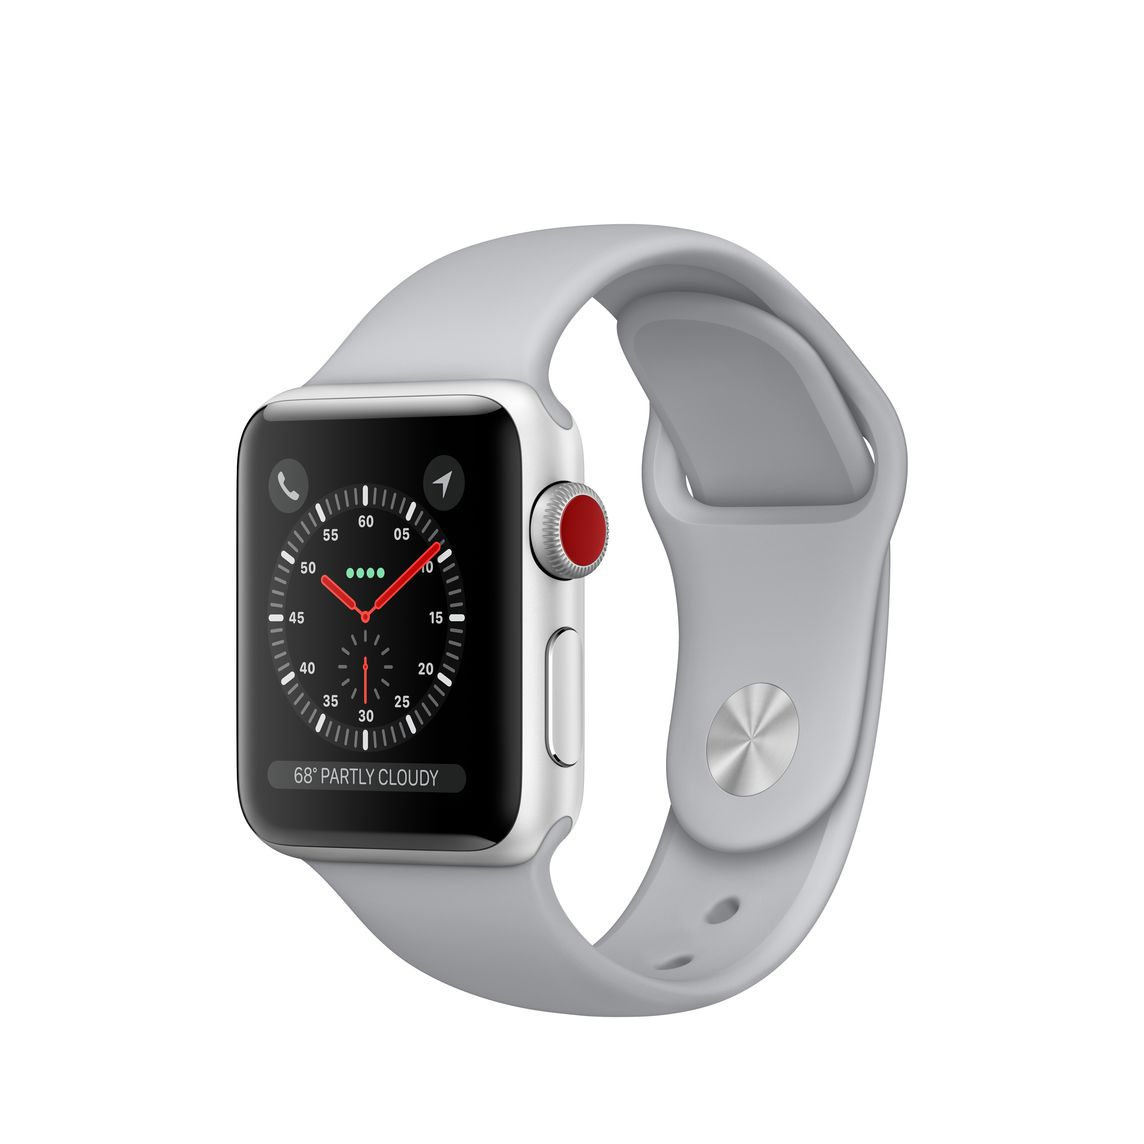 best sneakers 9fea0 958d5 Refurbished Apple Watch Series 3 GPS + Cellular, 38mm Silver Aluminium Case  with Fog Sport Band